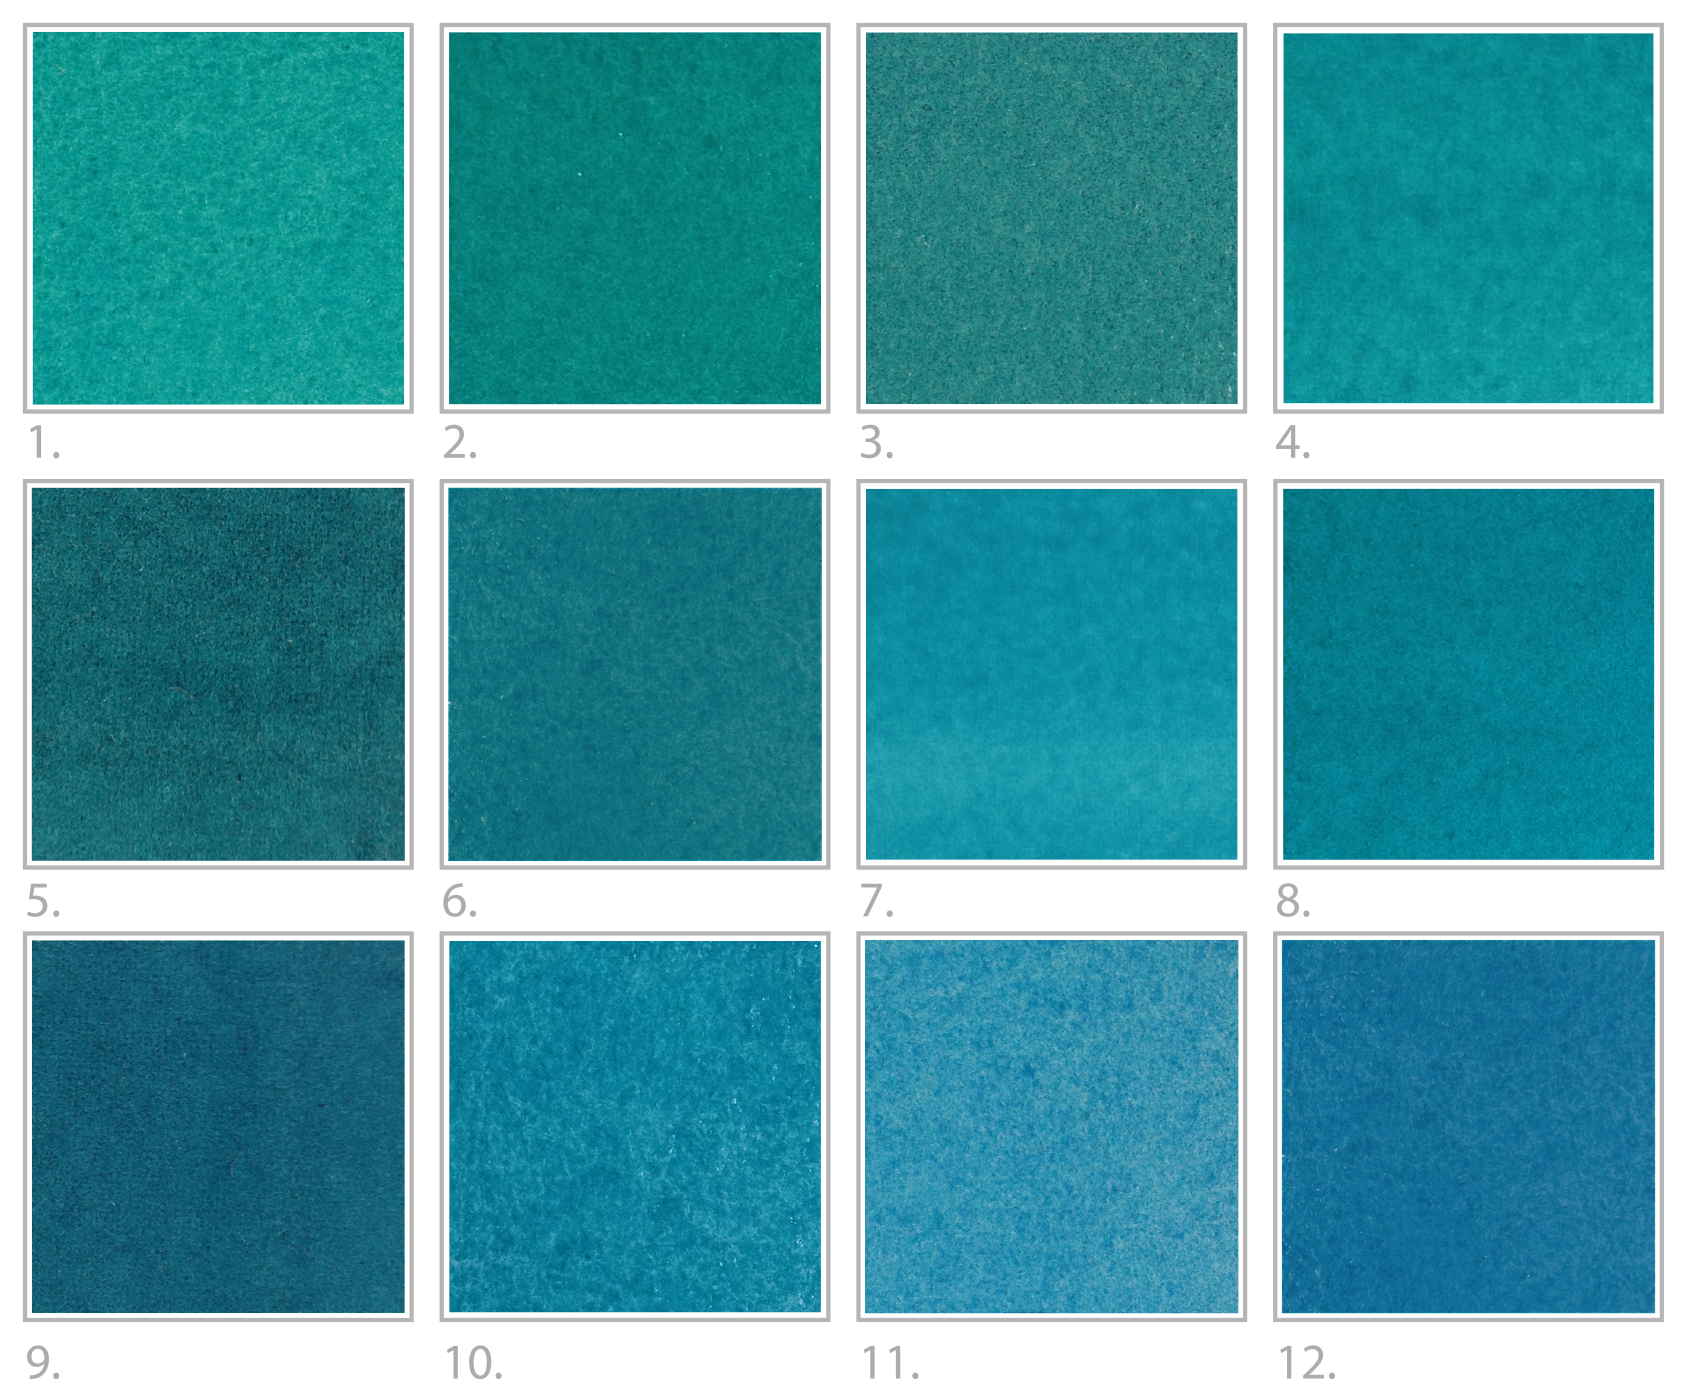 News kroma artist 39 s acrylics - Is turquoise green or blue ...